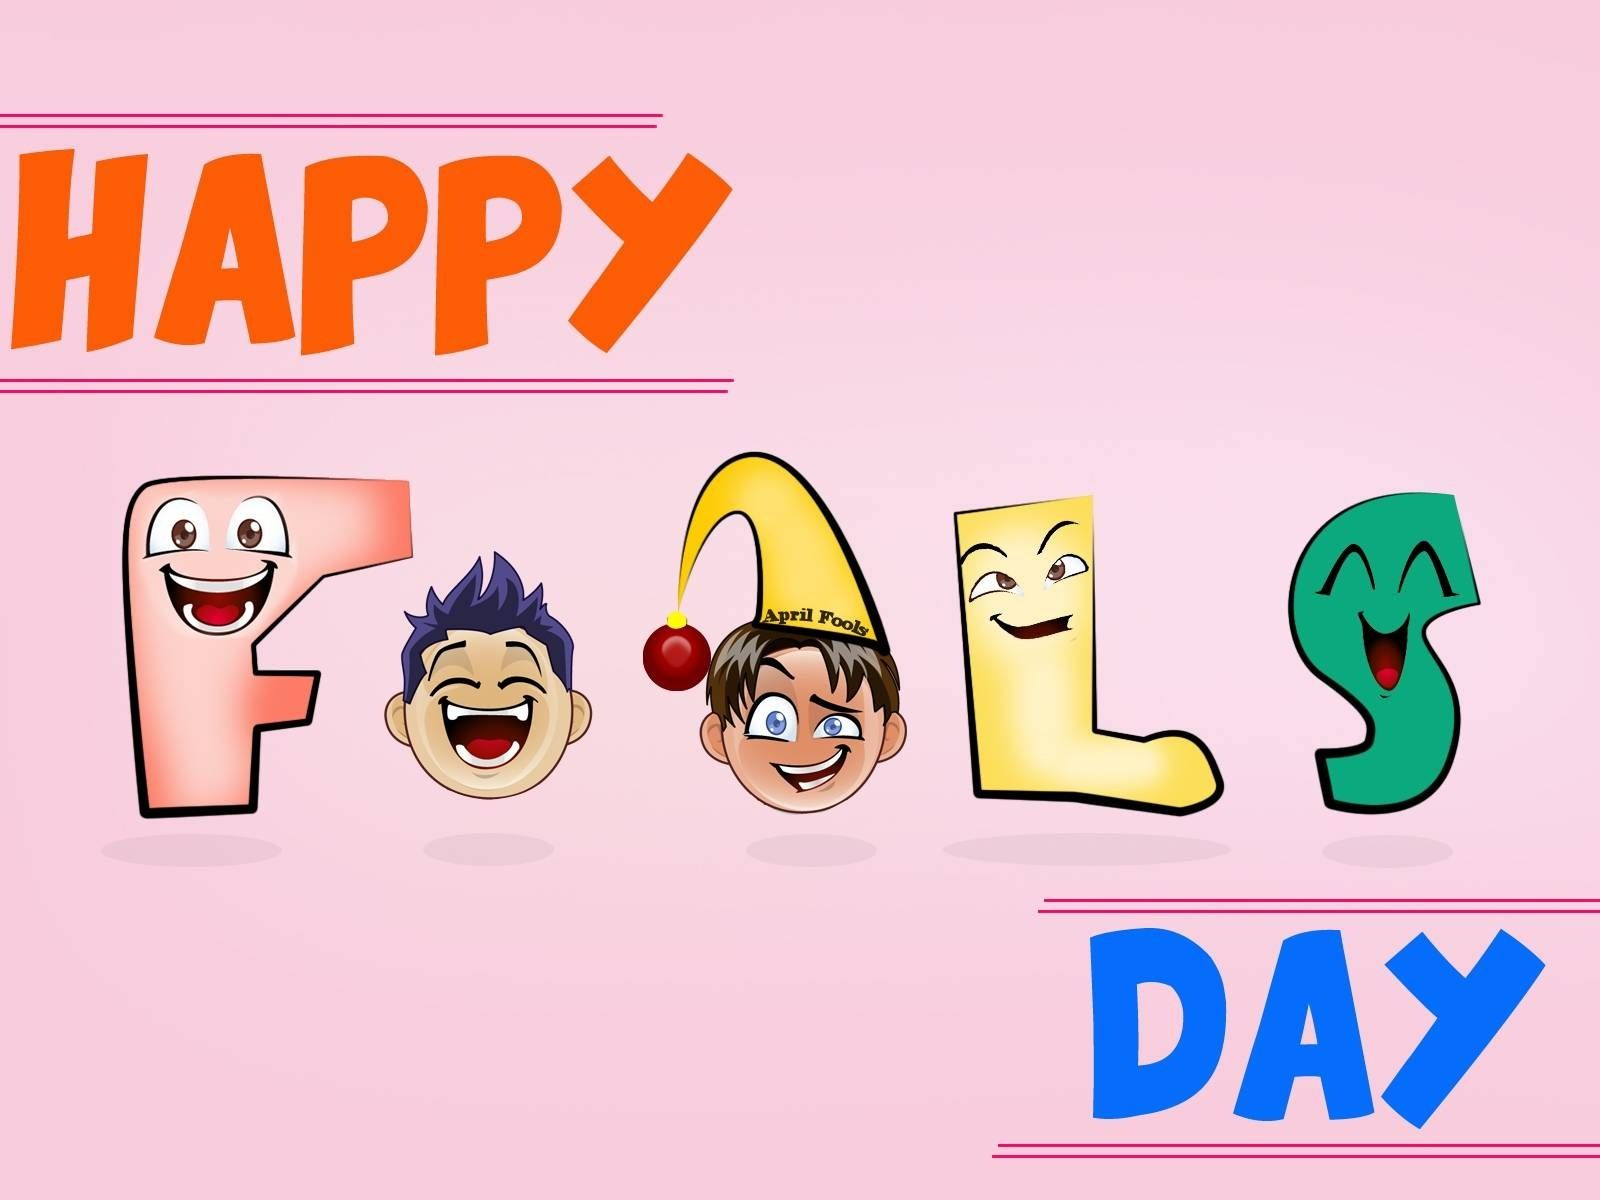 1st April Fool Day Pictures  Download 2 3jpg 16001200 1600x1200